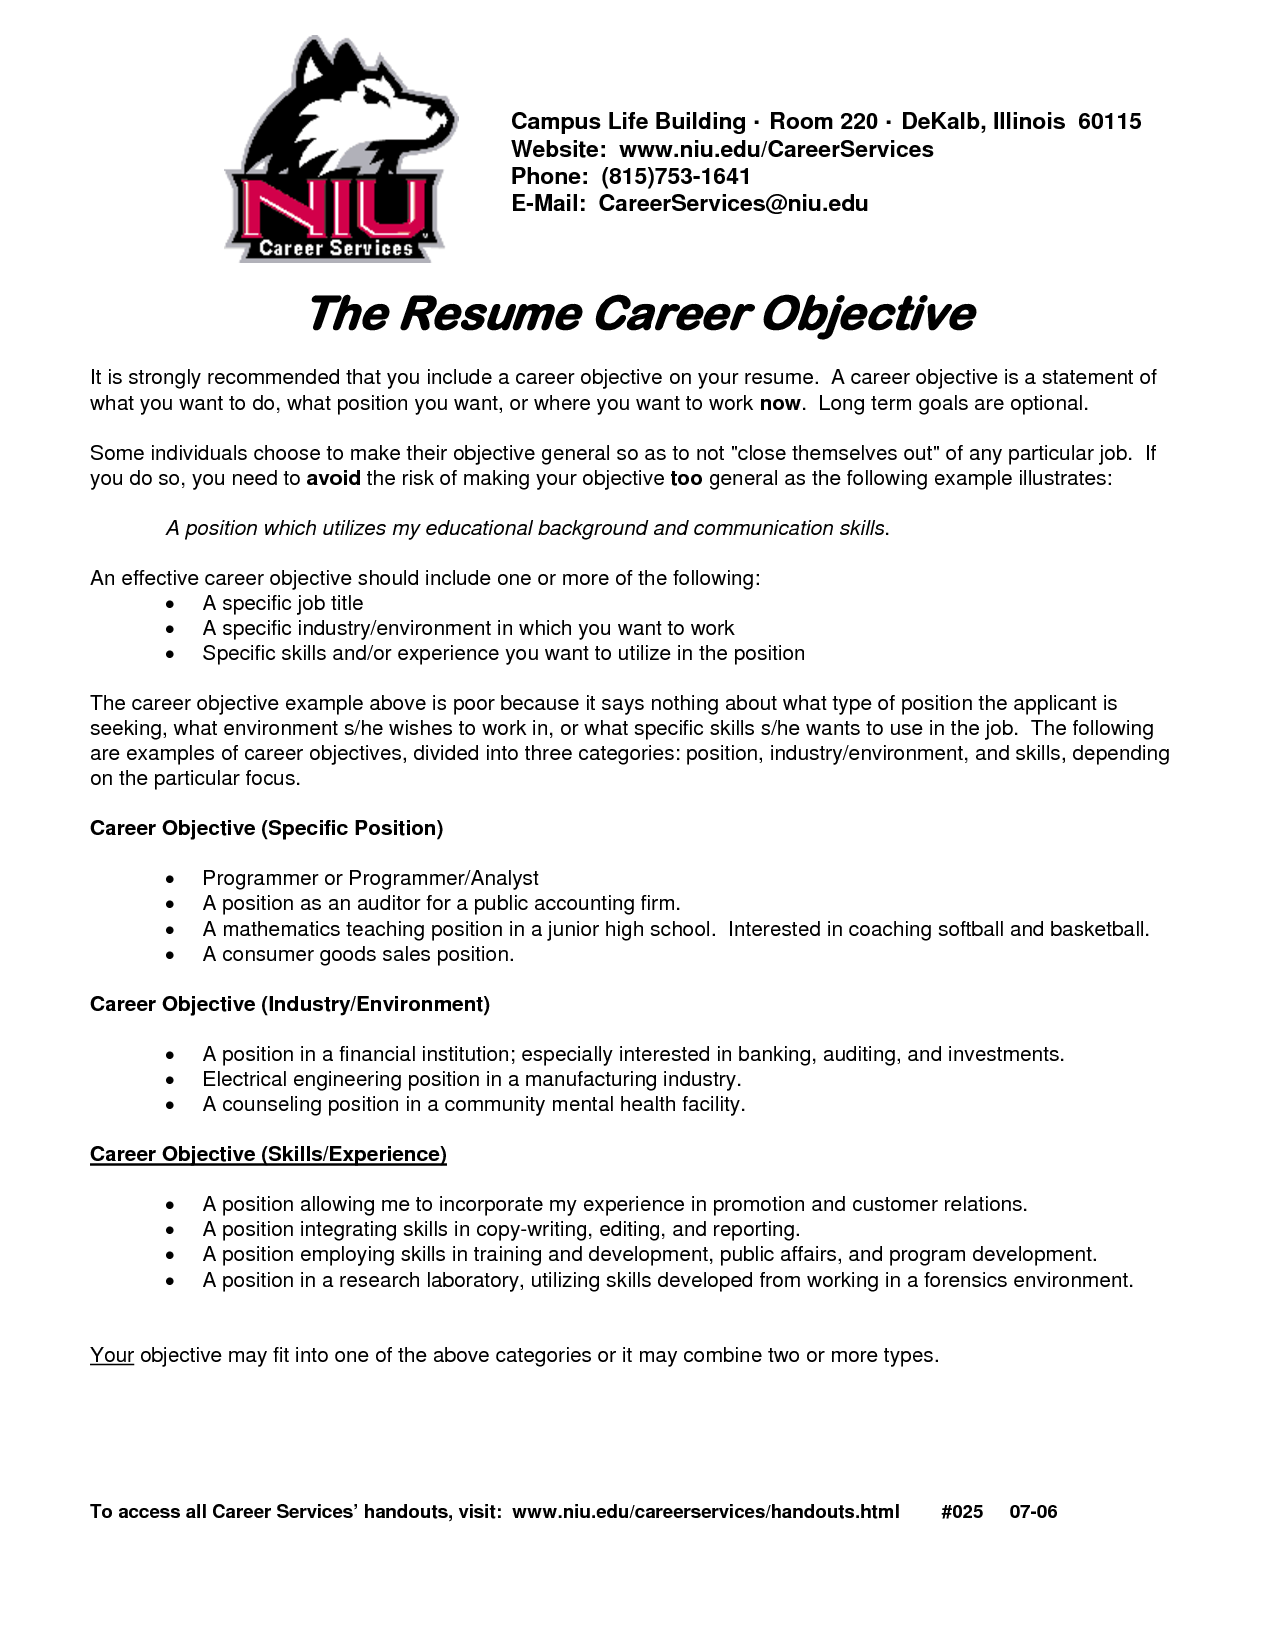 work resume objective - Example Of A Work Resume